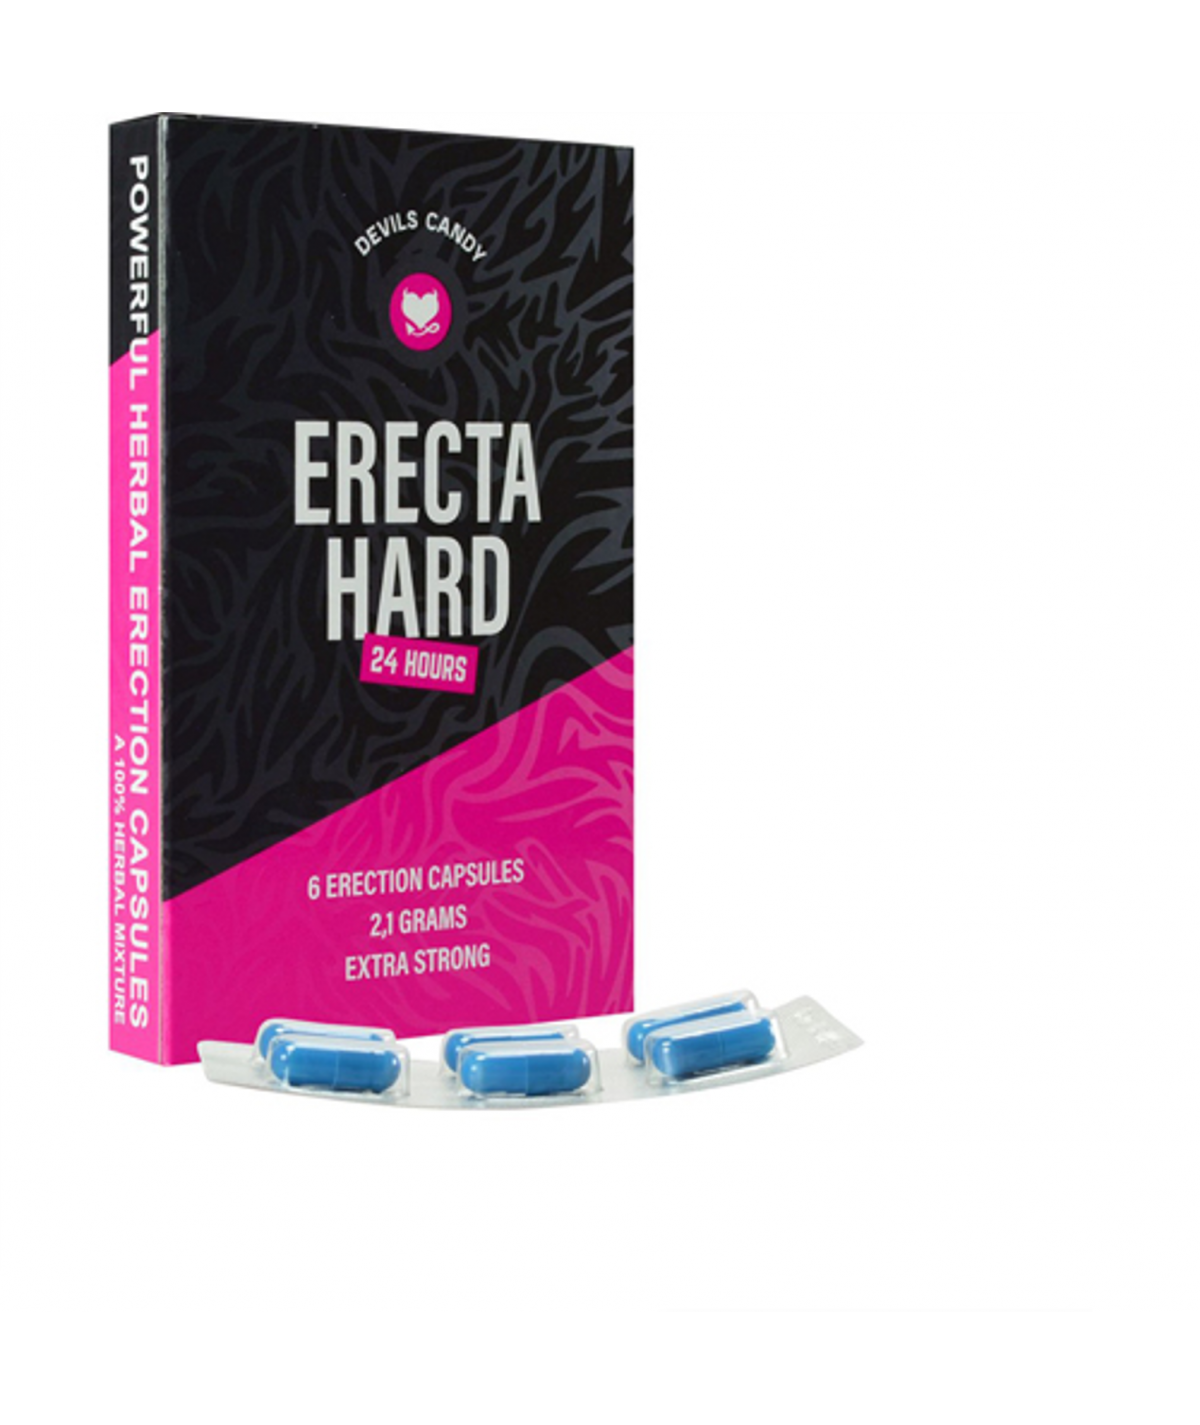 Erecta Hard - Devils Candy